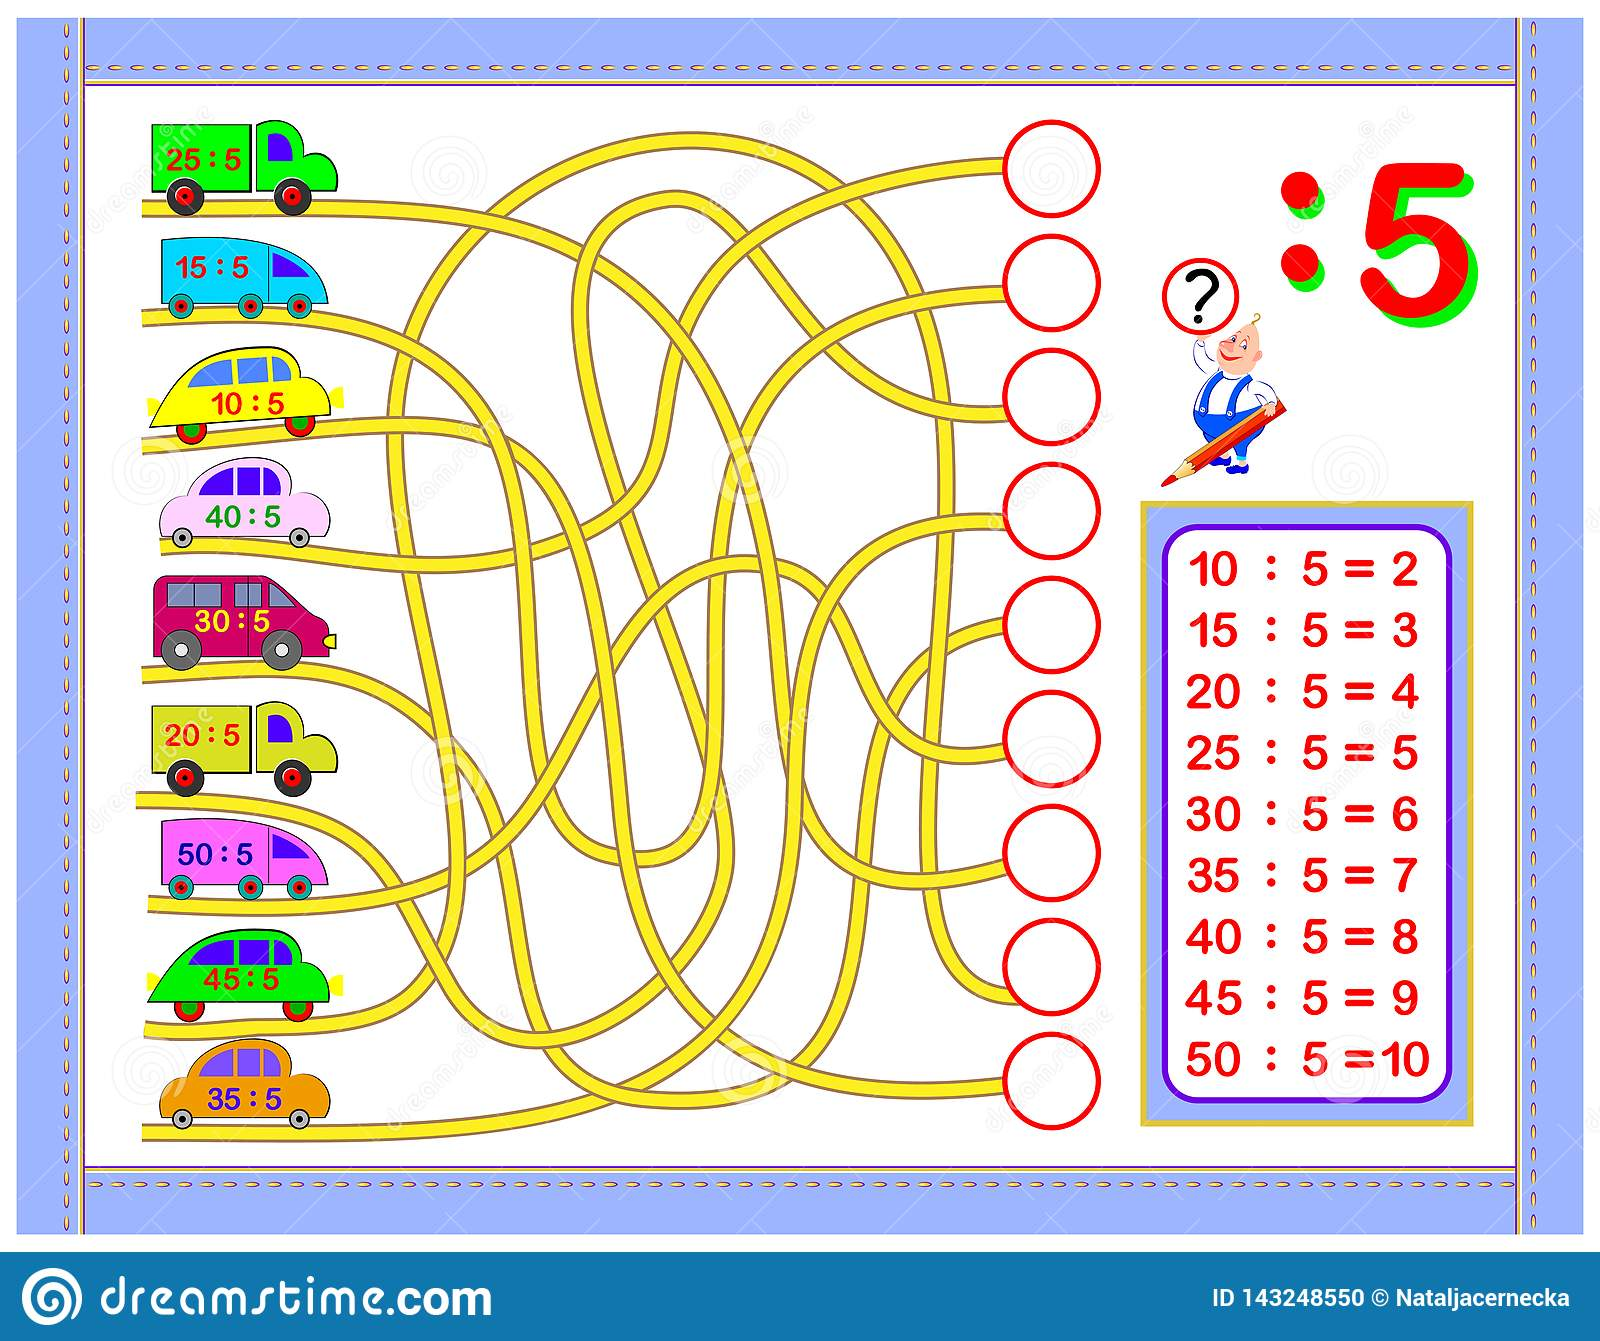 Exercises For Kids With Division By Number 5 Paint The